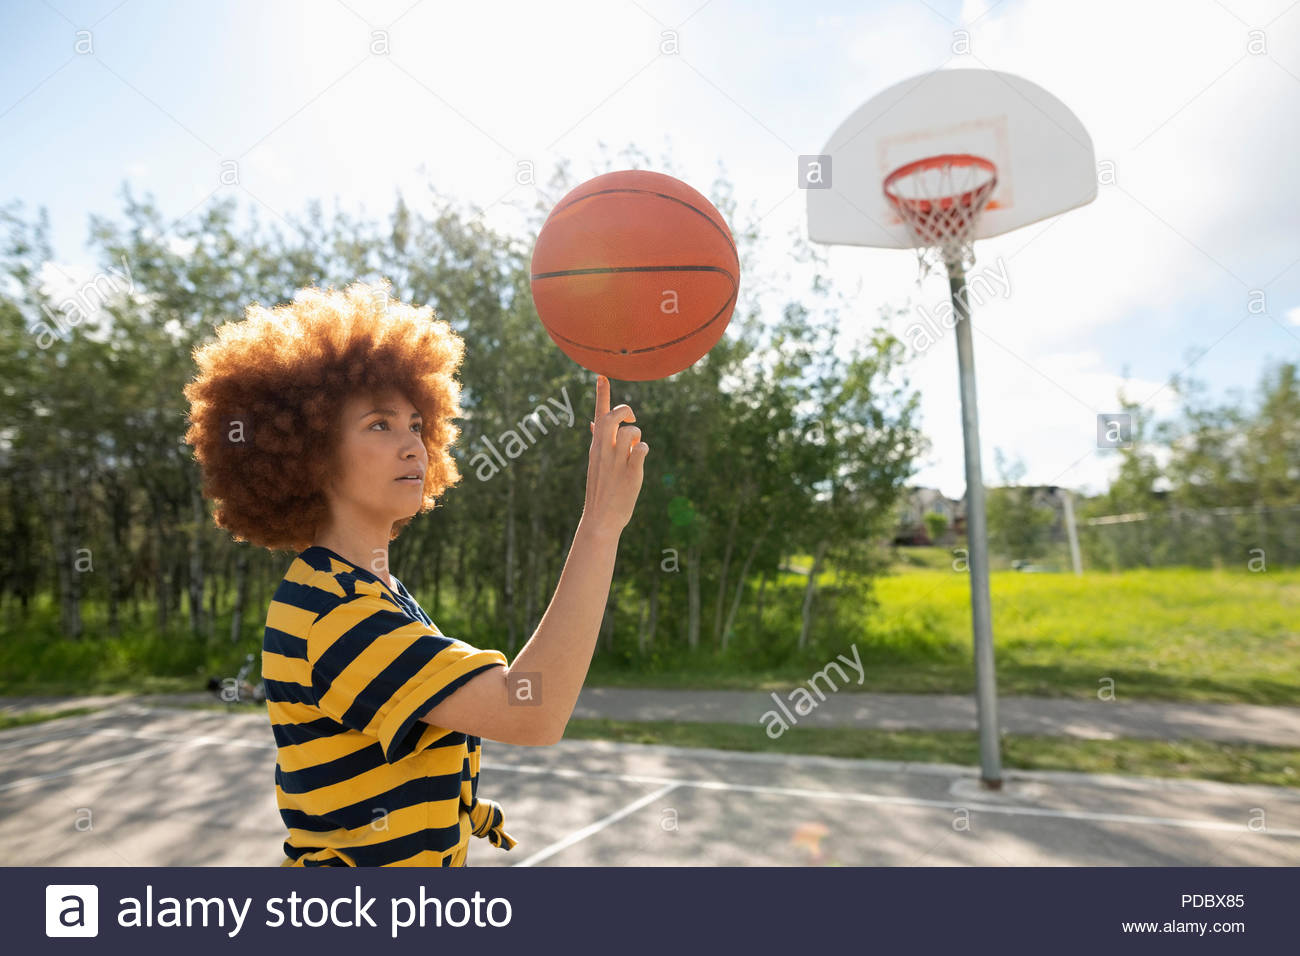 Cool teenage girl with afro balancing basketball on finger at park basketball court - Stock Image